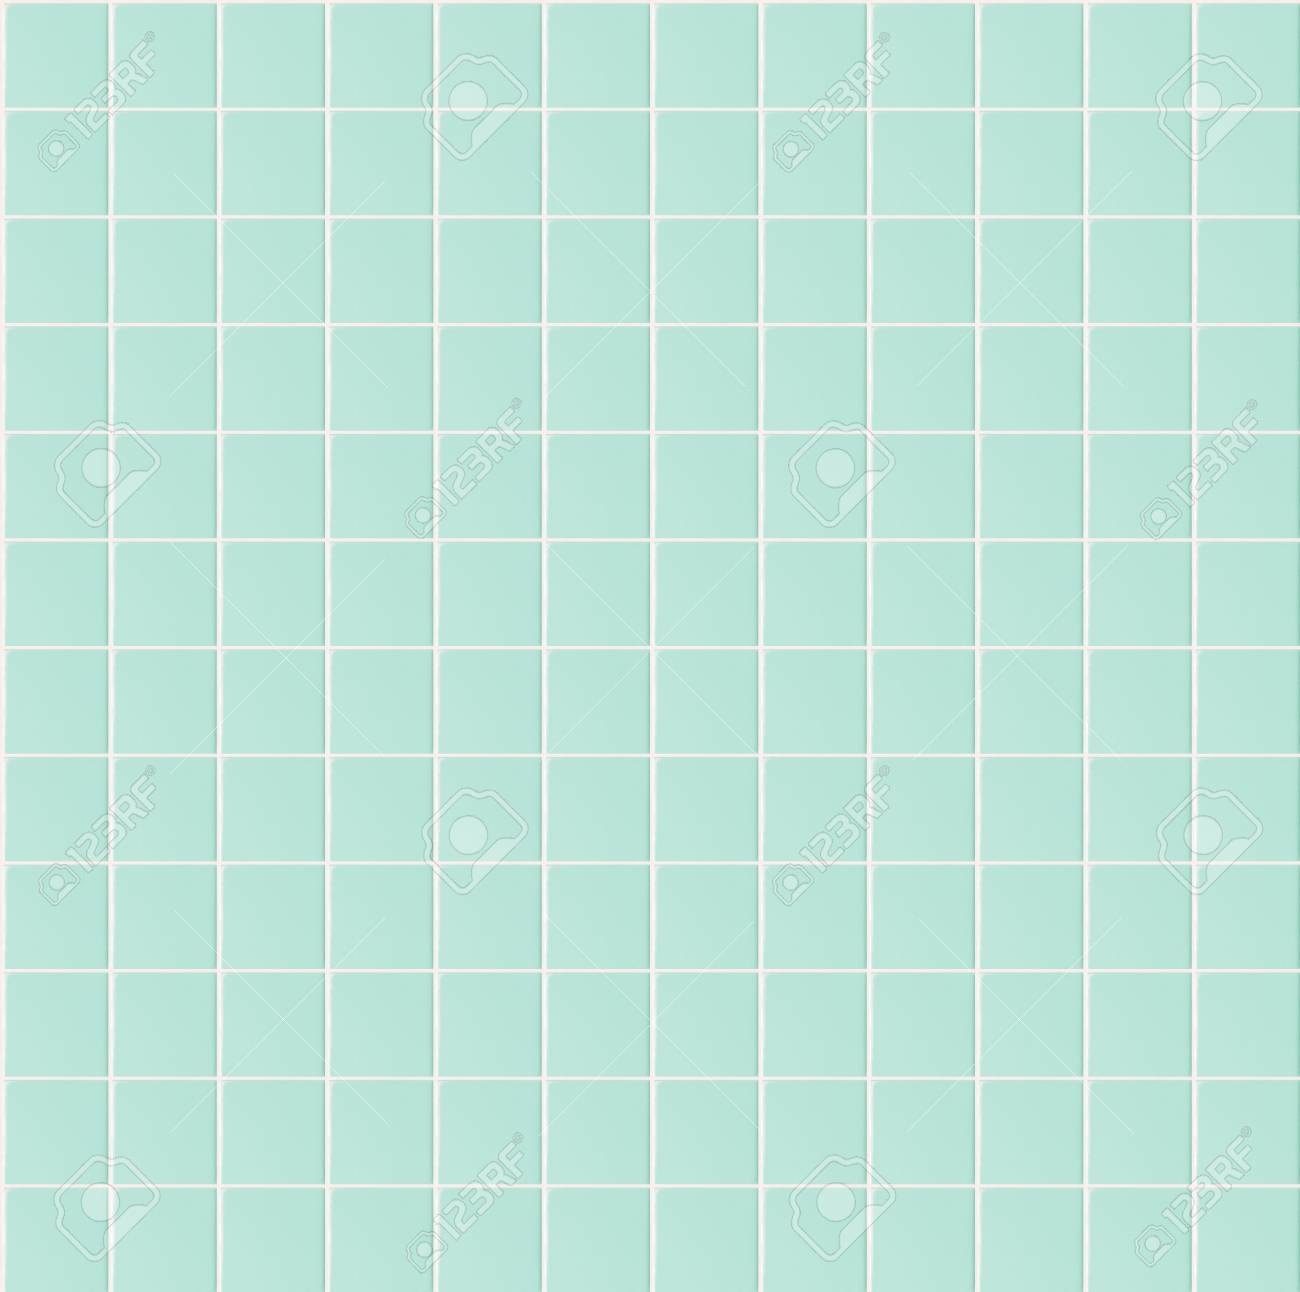 Light Green Seamless Pattern Tile Wall Texture Background For ...